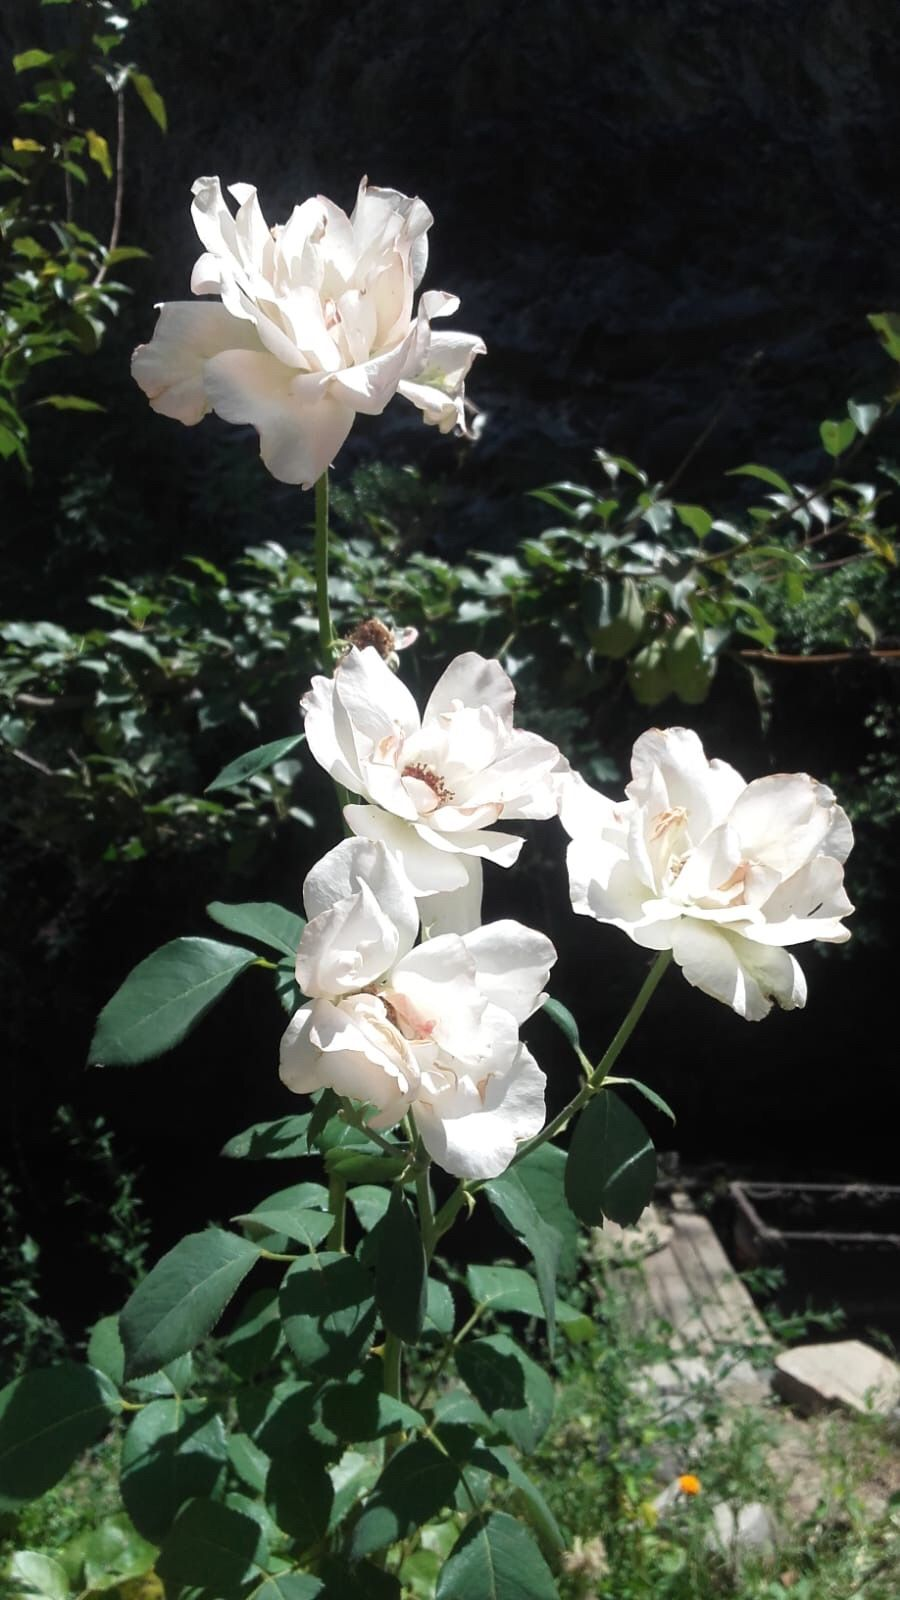 #photography #white #rose #summer